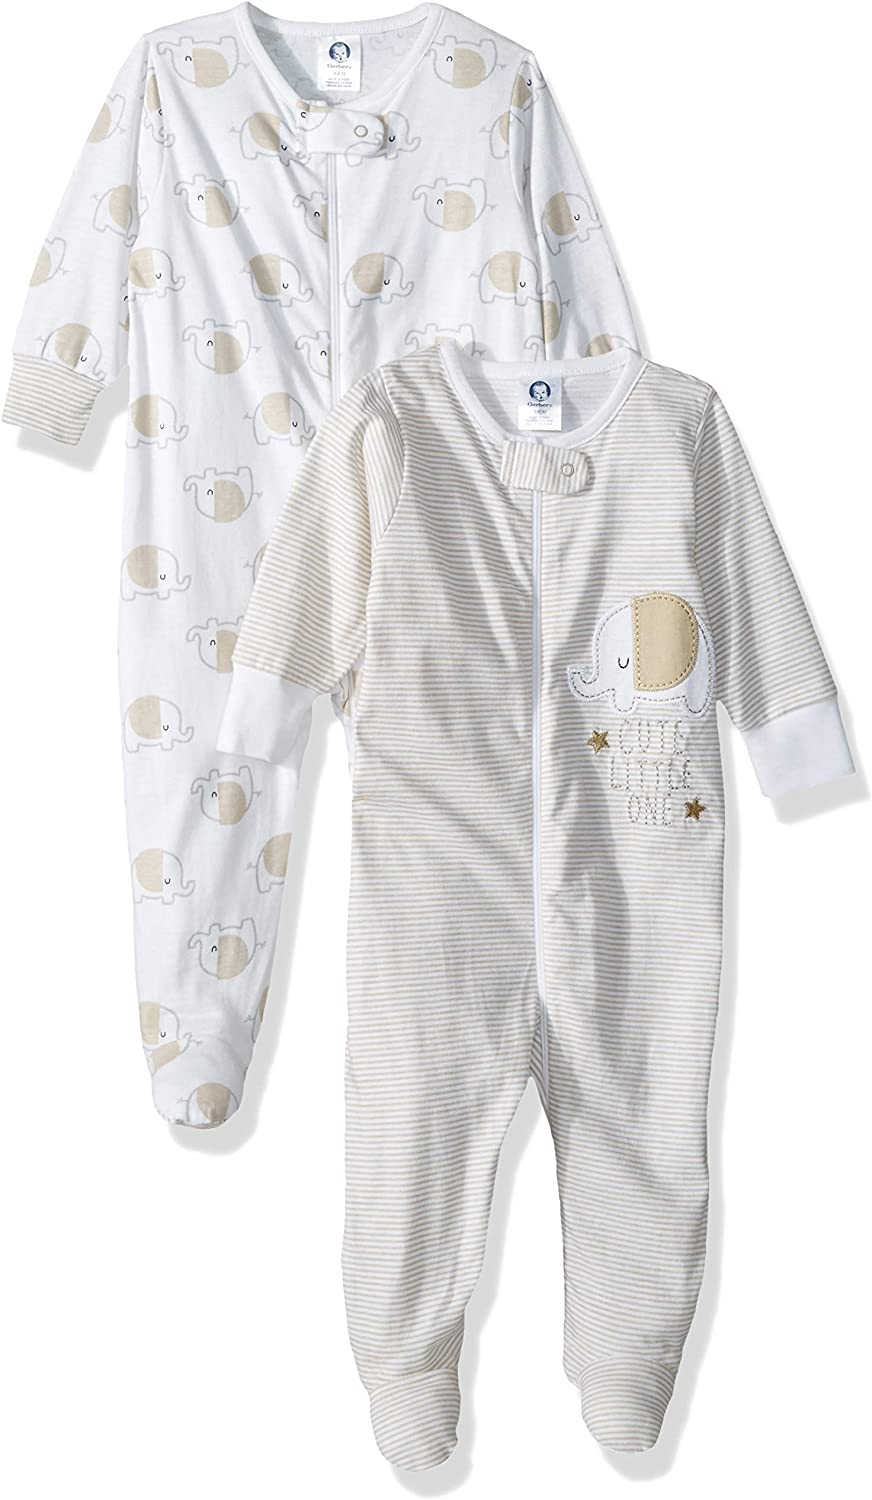 Gerber Baby 2-Pack Sleep 'N Play